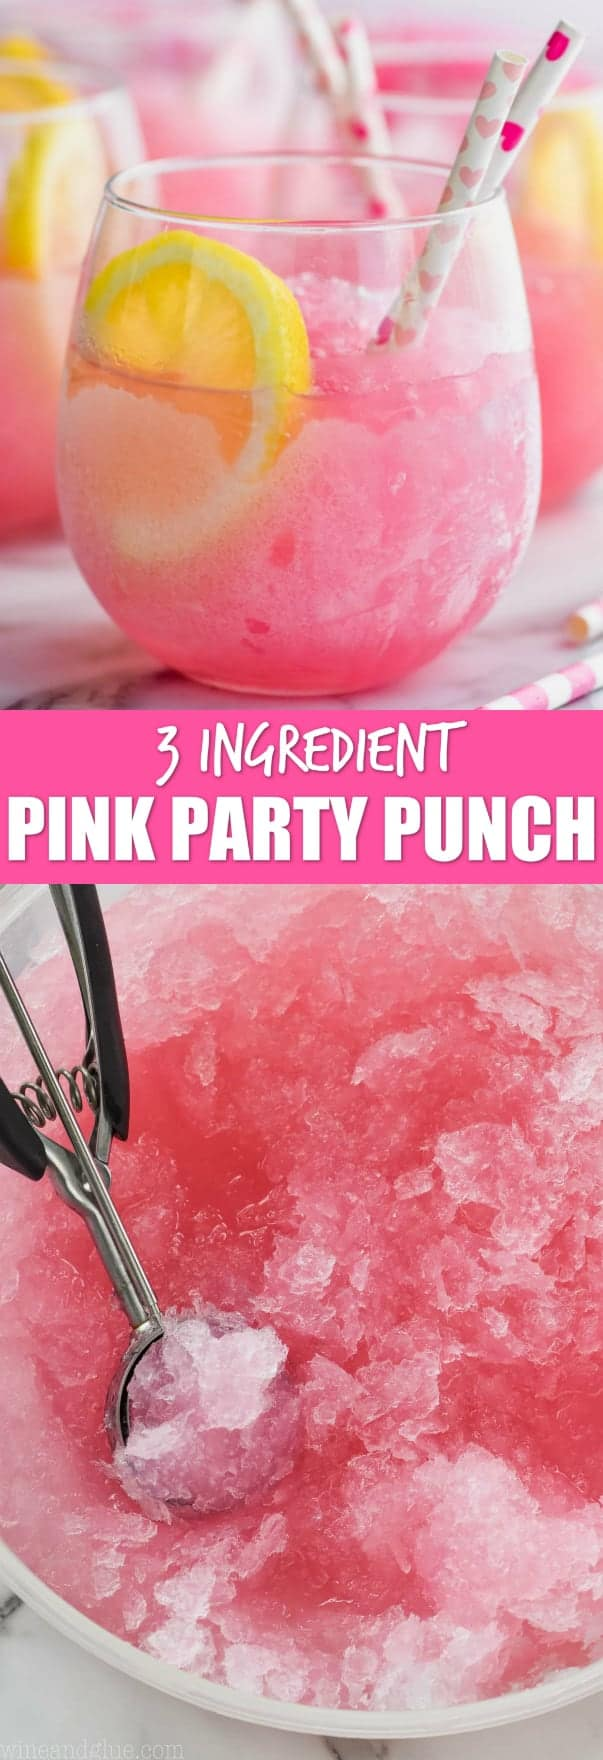 collage of pink party punch photos